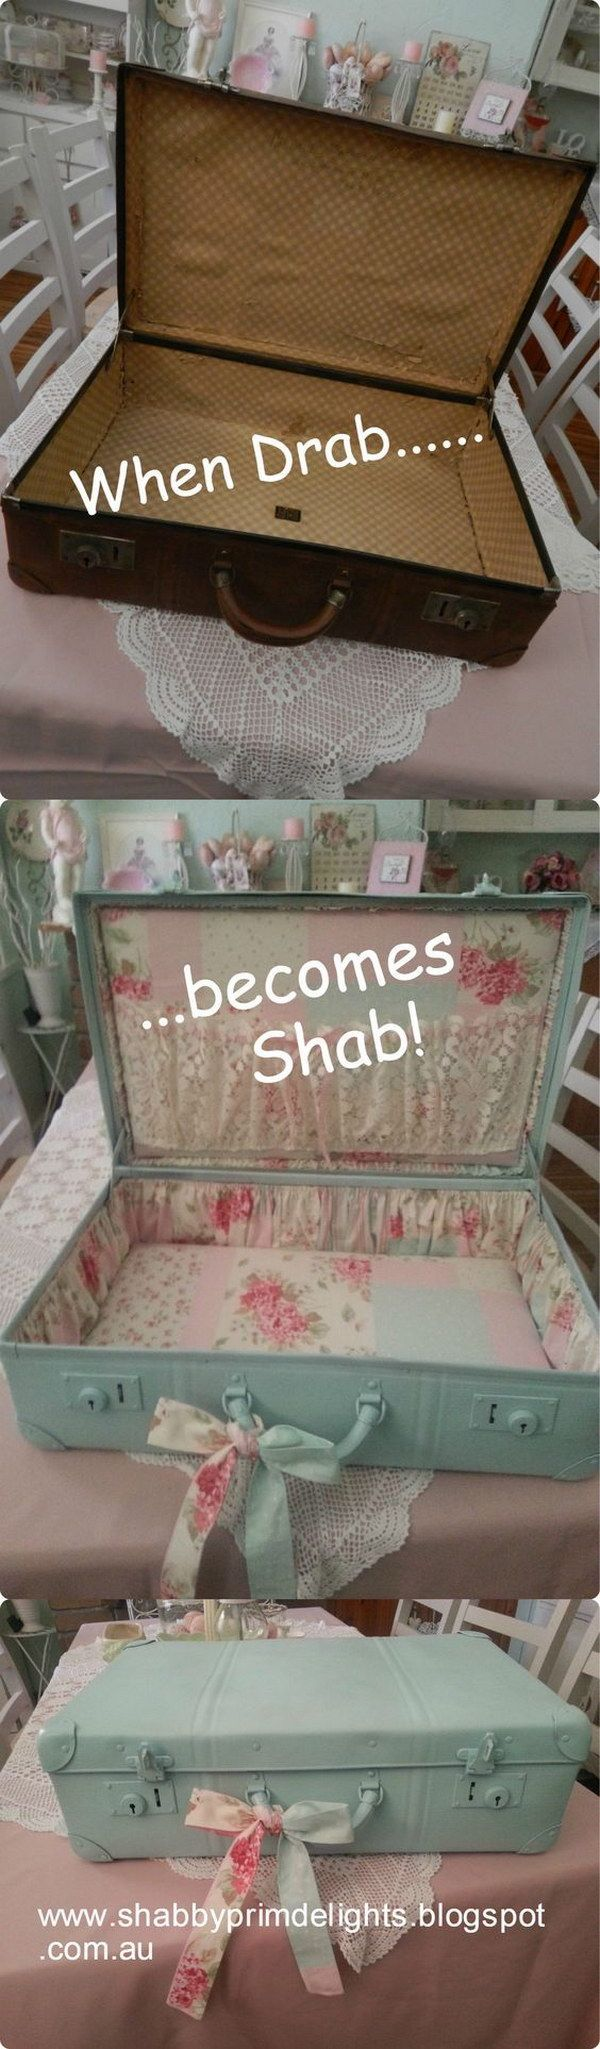 30 Fantistic DIY Shabby Chic Furniture Ideas Tutorials